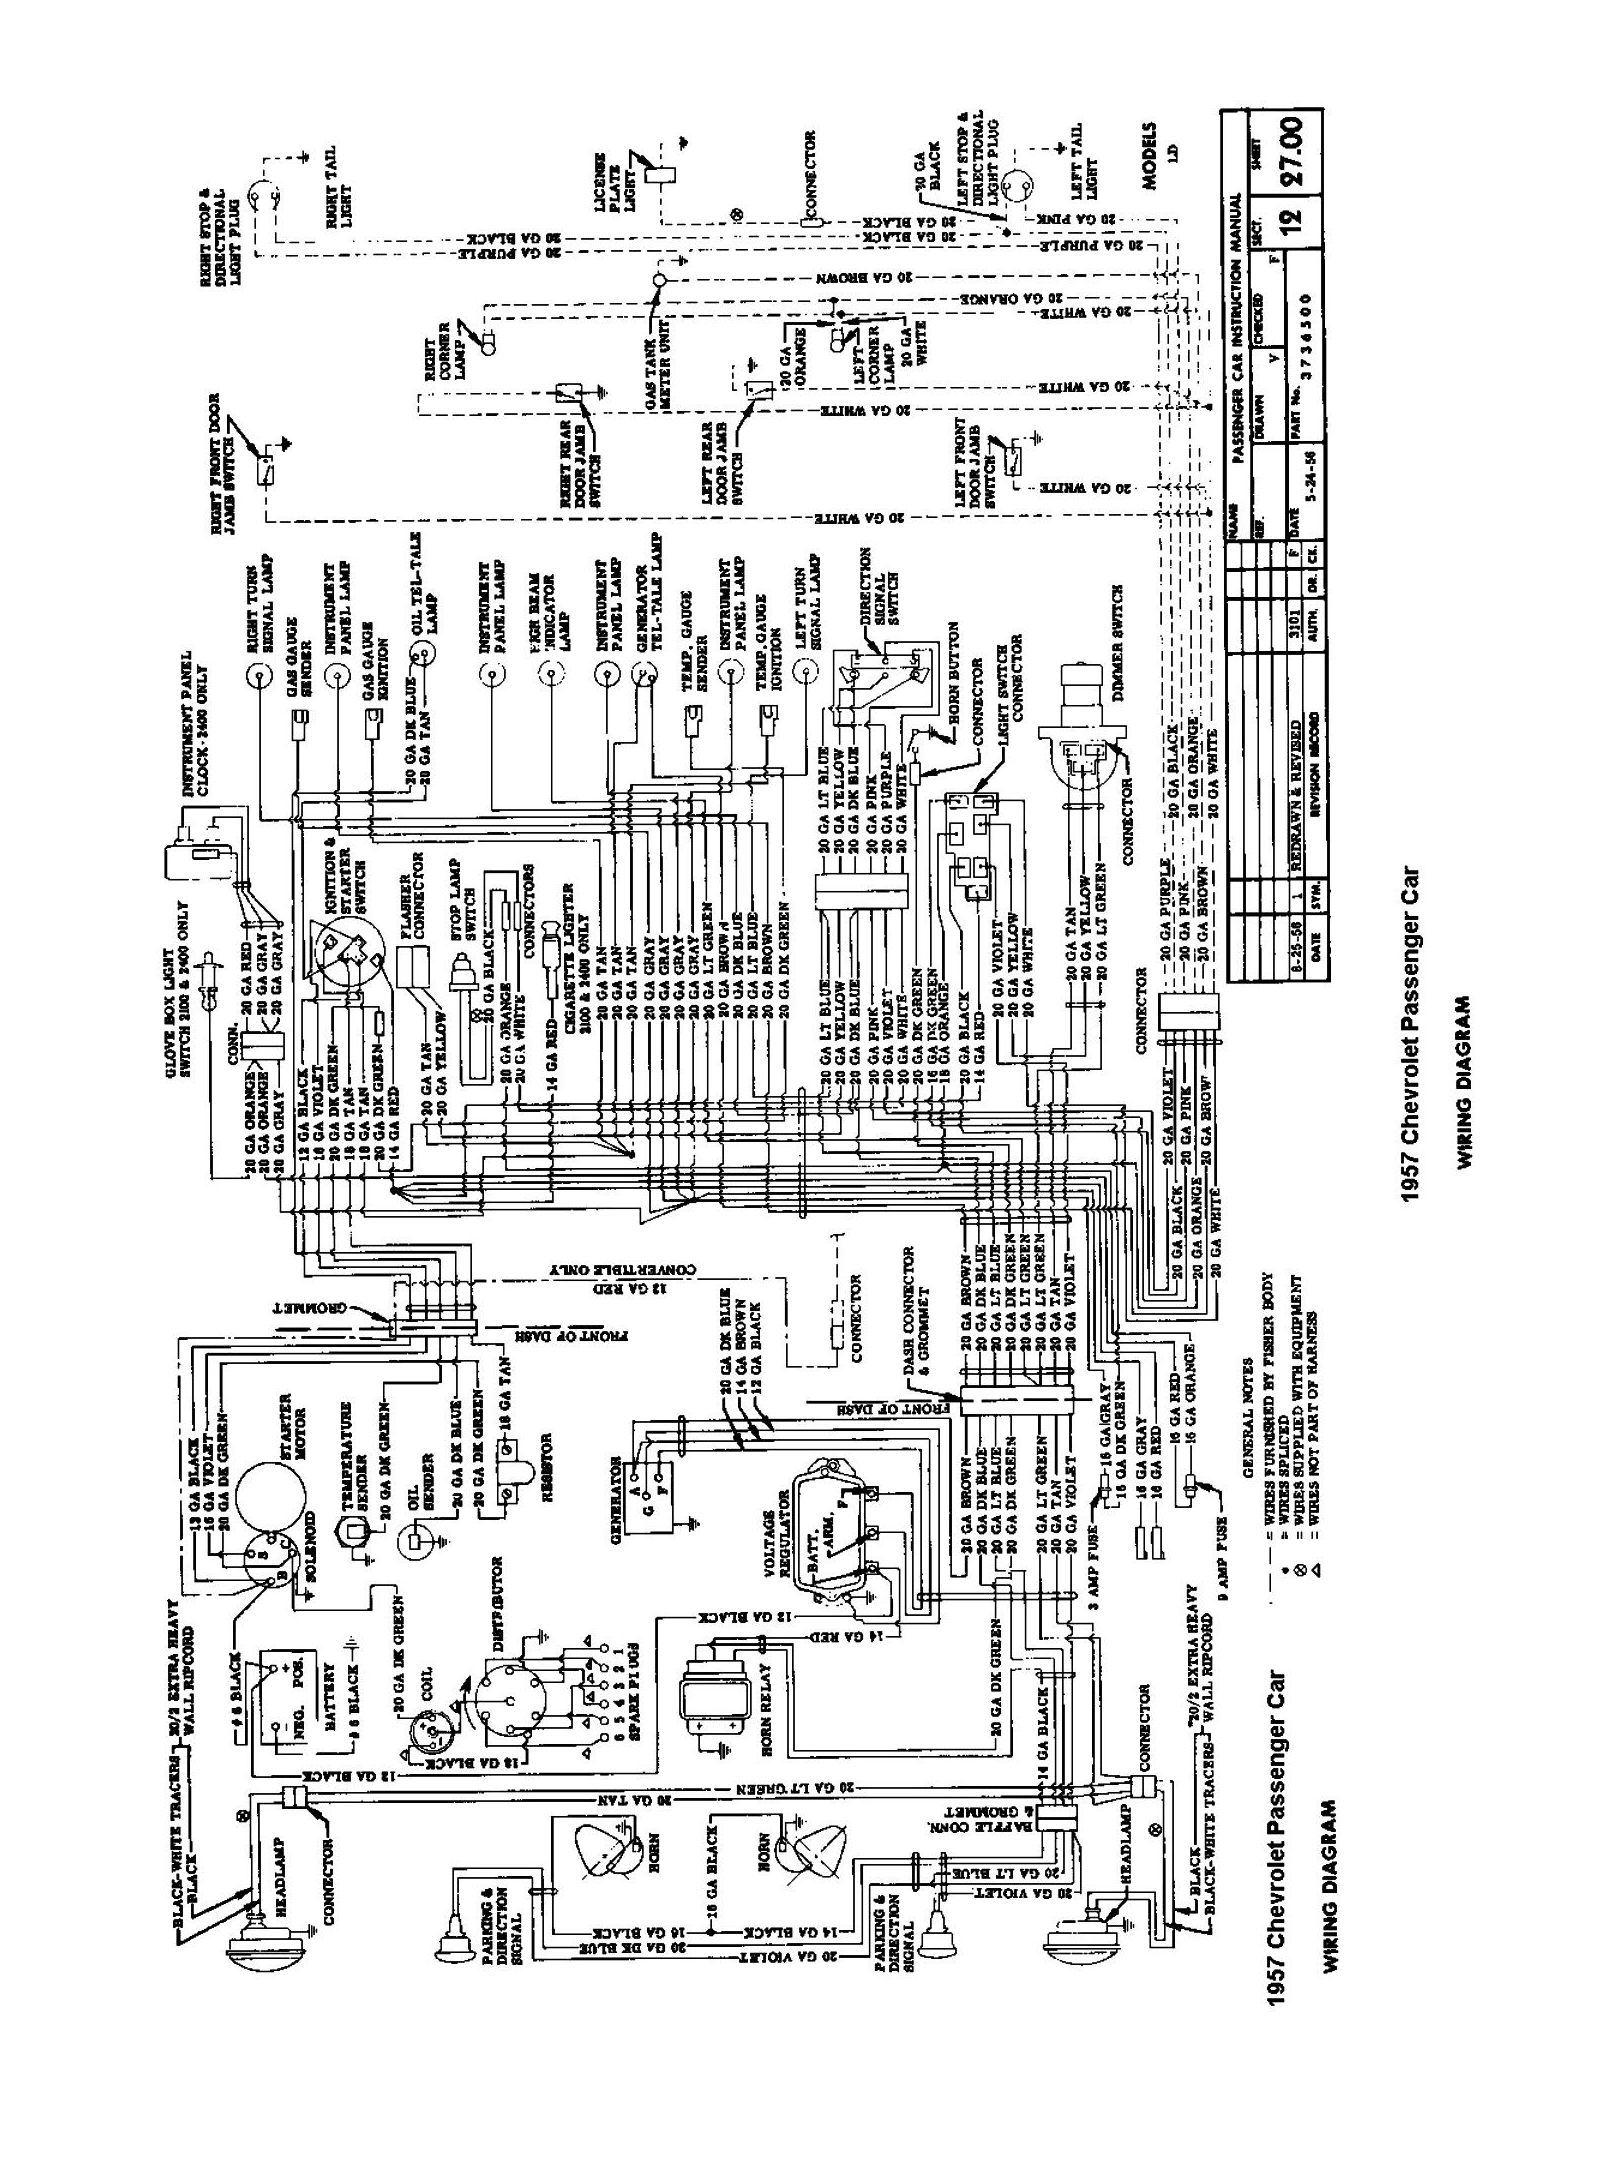 57 chevy under hood wiring harness wiring diagram article review mix 57 chevy under hood wiring [ 1600 x 2164 Pixel ]